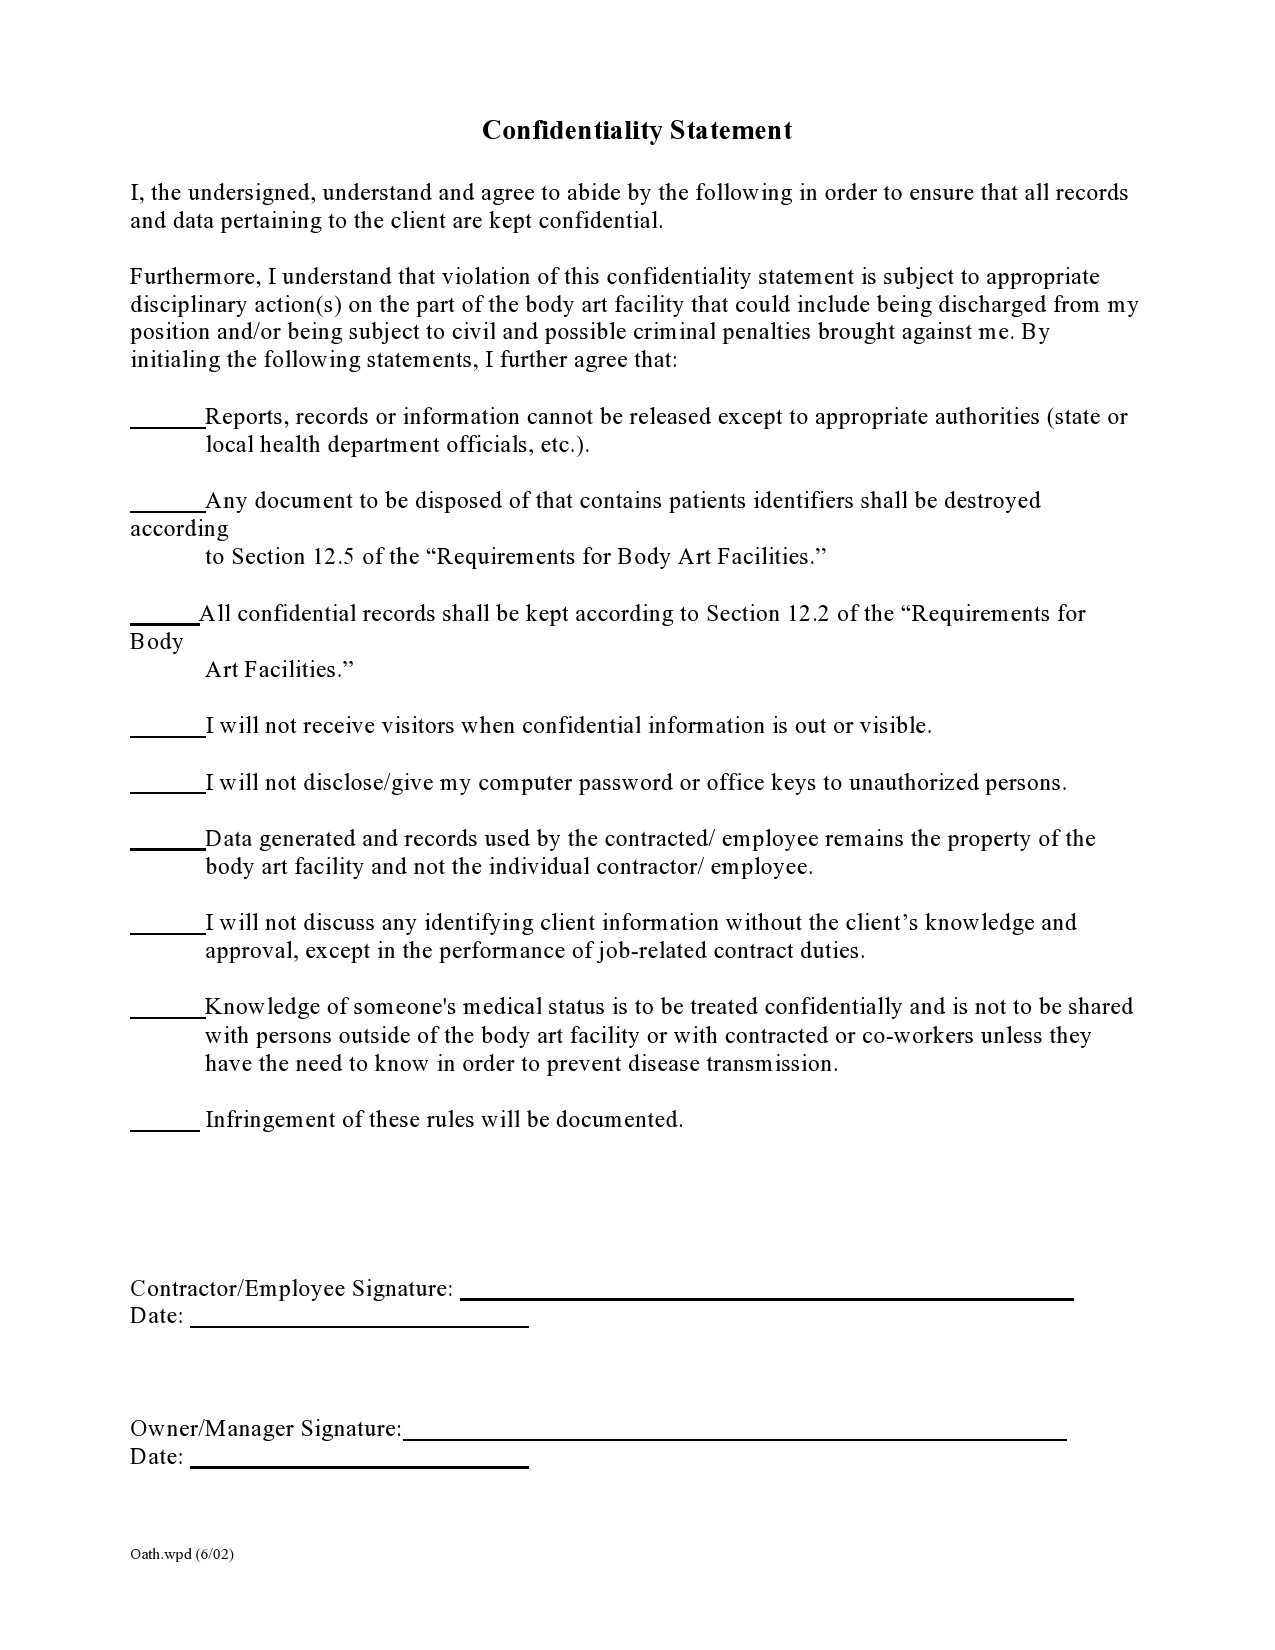 Free confidentiality statement 15